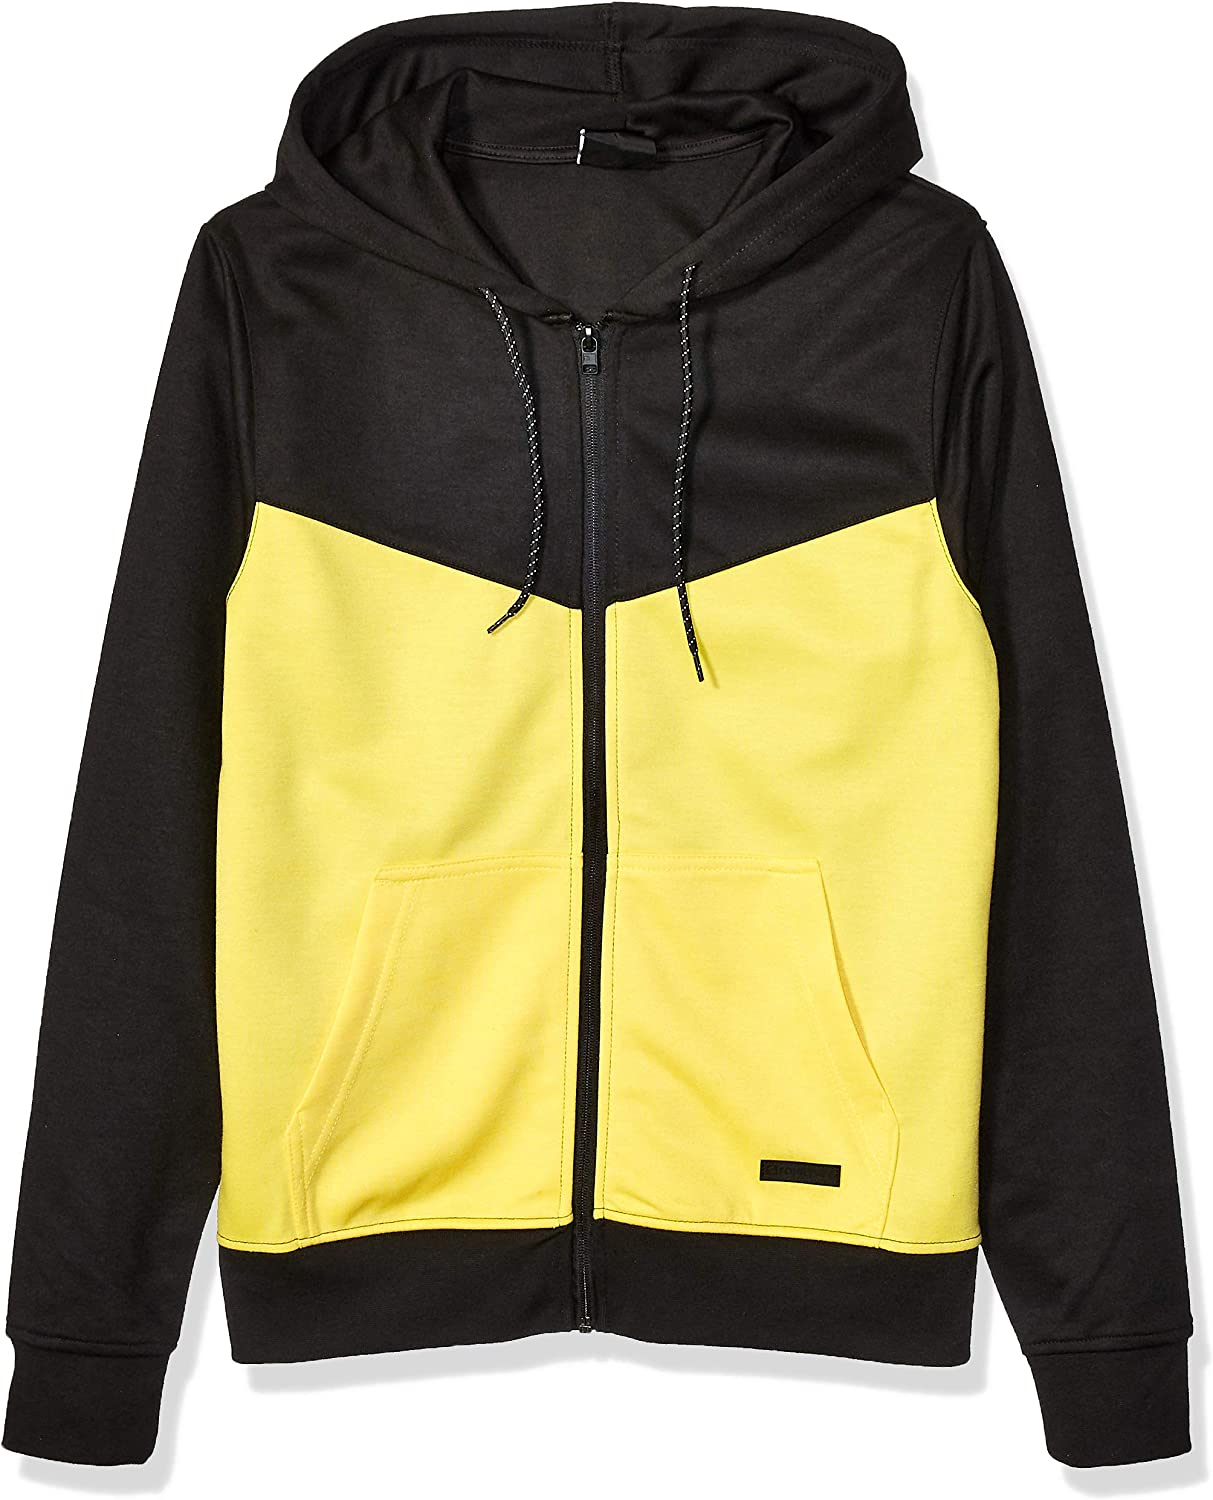 Southpole Men's Tech Fleece Hooded Tops (Full-Zip, Pullover) : Clothing, Shoes & Jewelry